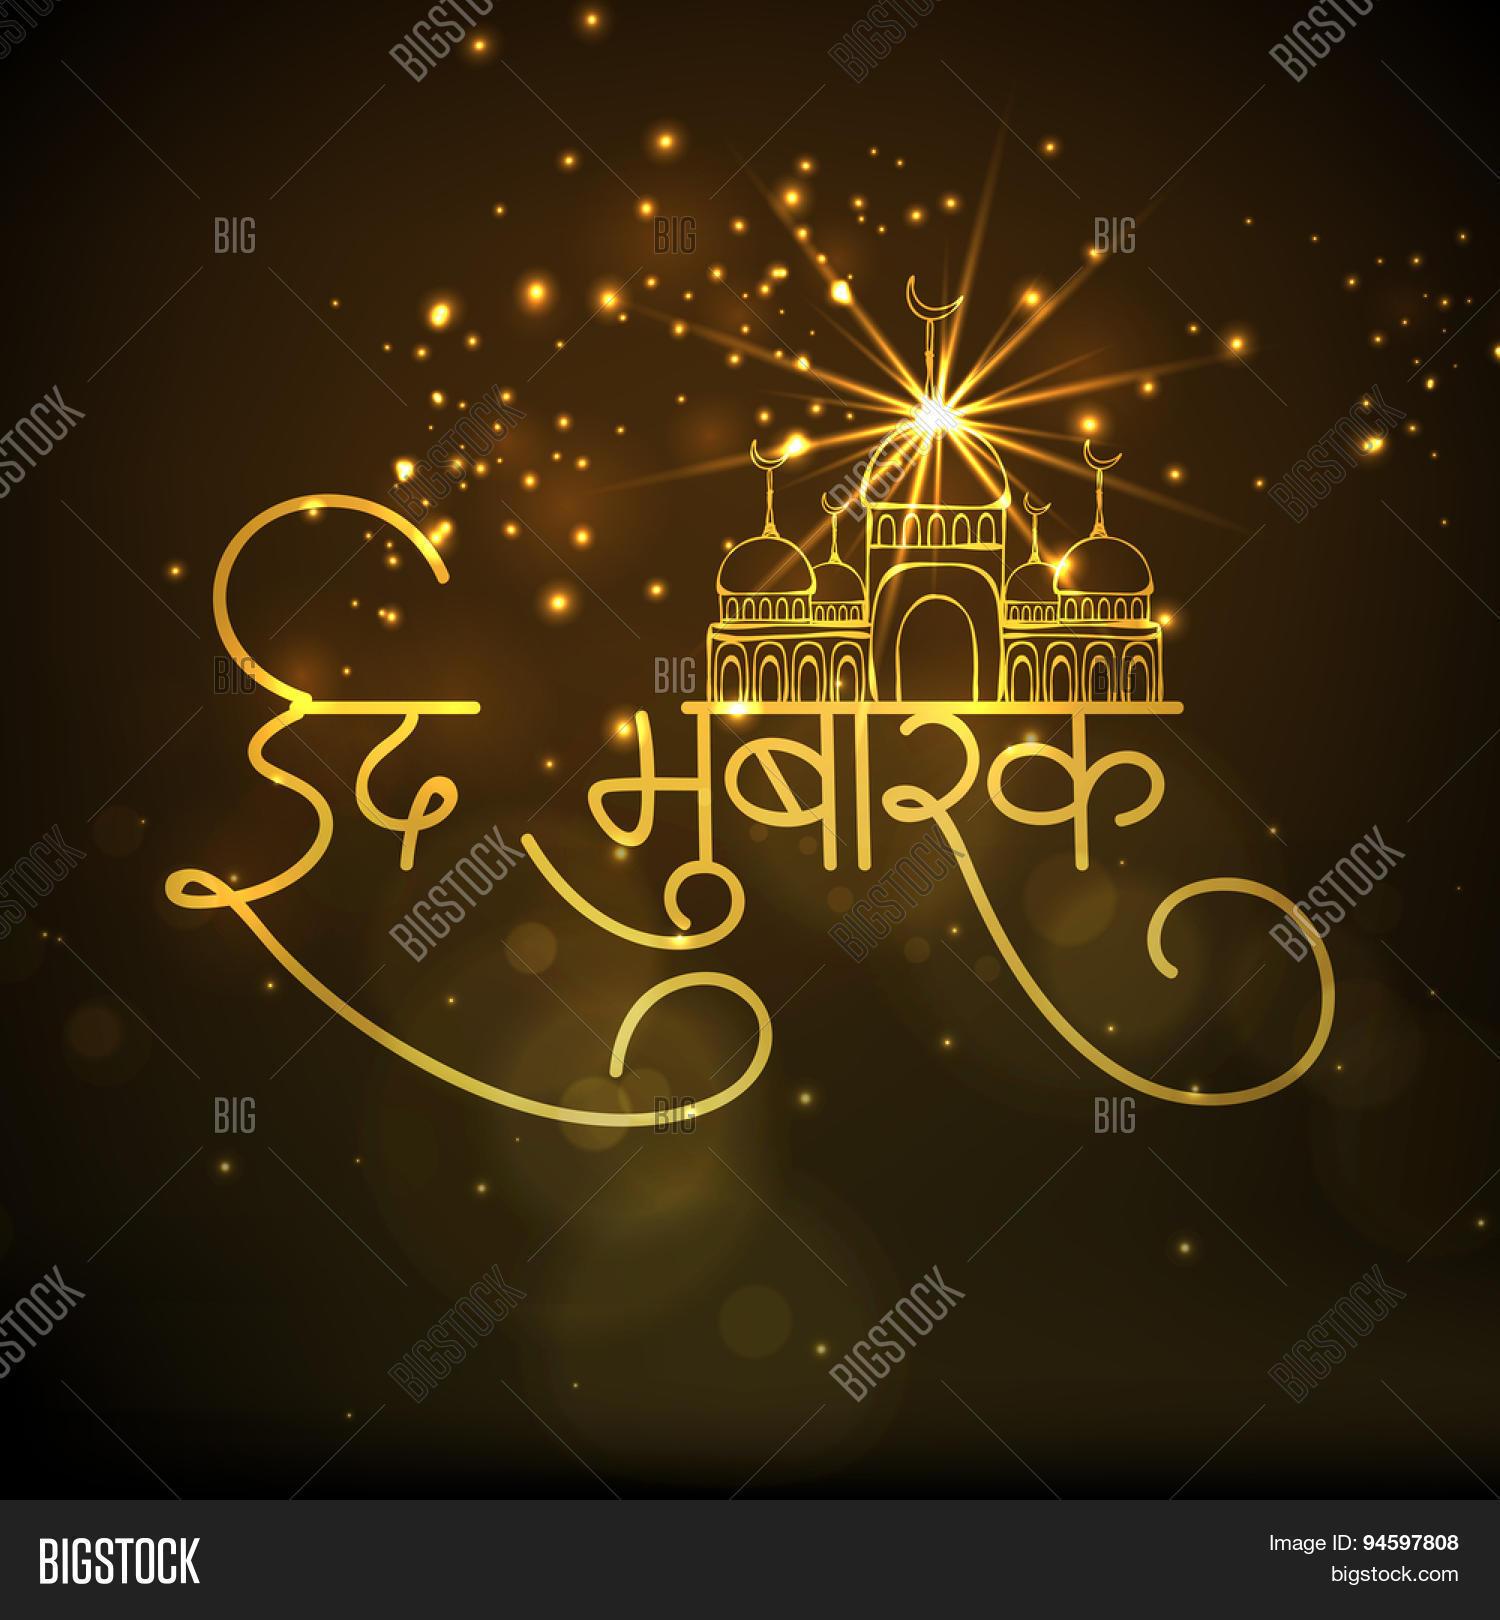 Beautiful greeting card design vector photo bigstock beautiful greeting card design with hindi wishing text eid mubarak happy eid on shiny kristyandbryce Choice Image